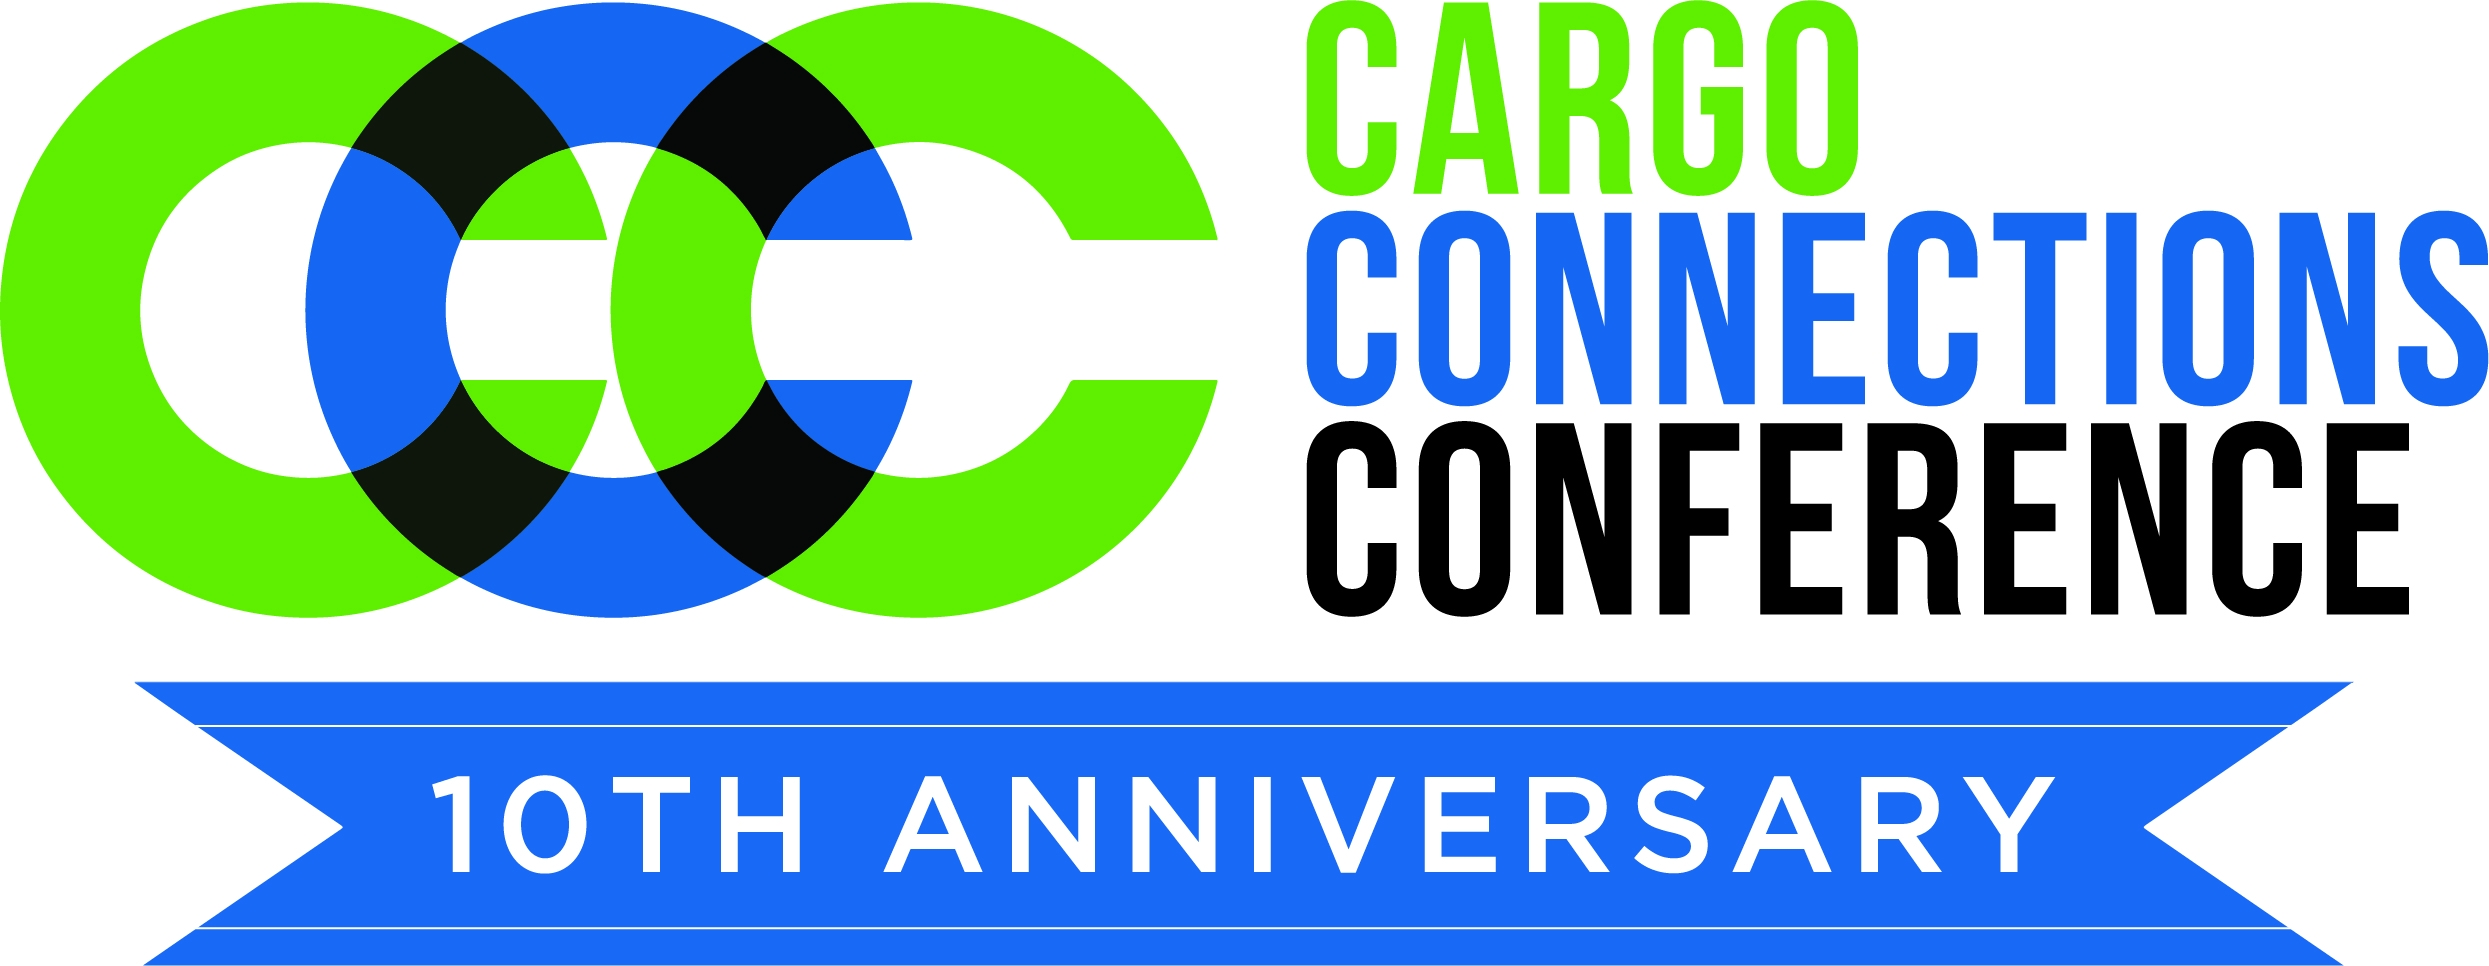 Cargo Connections Conference Logo